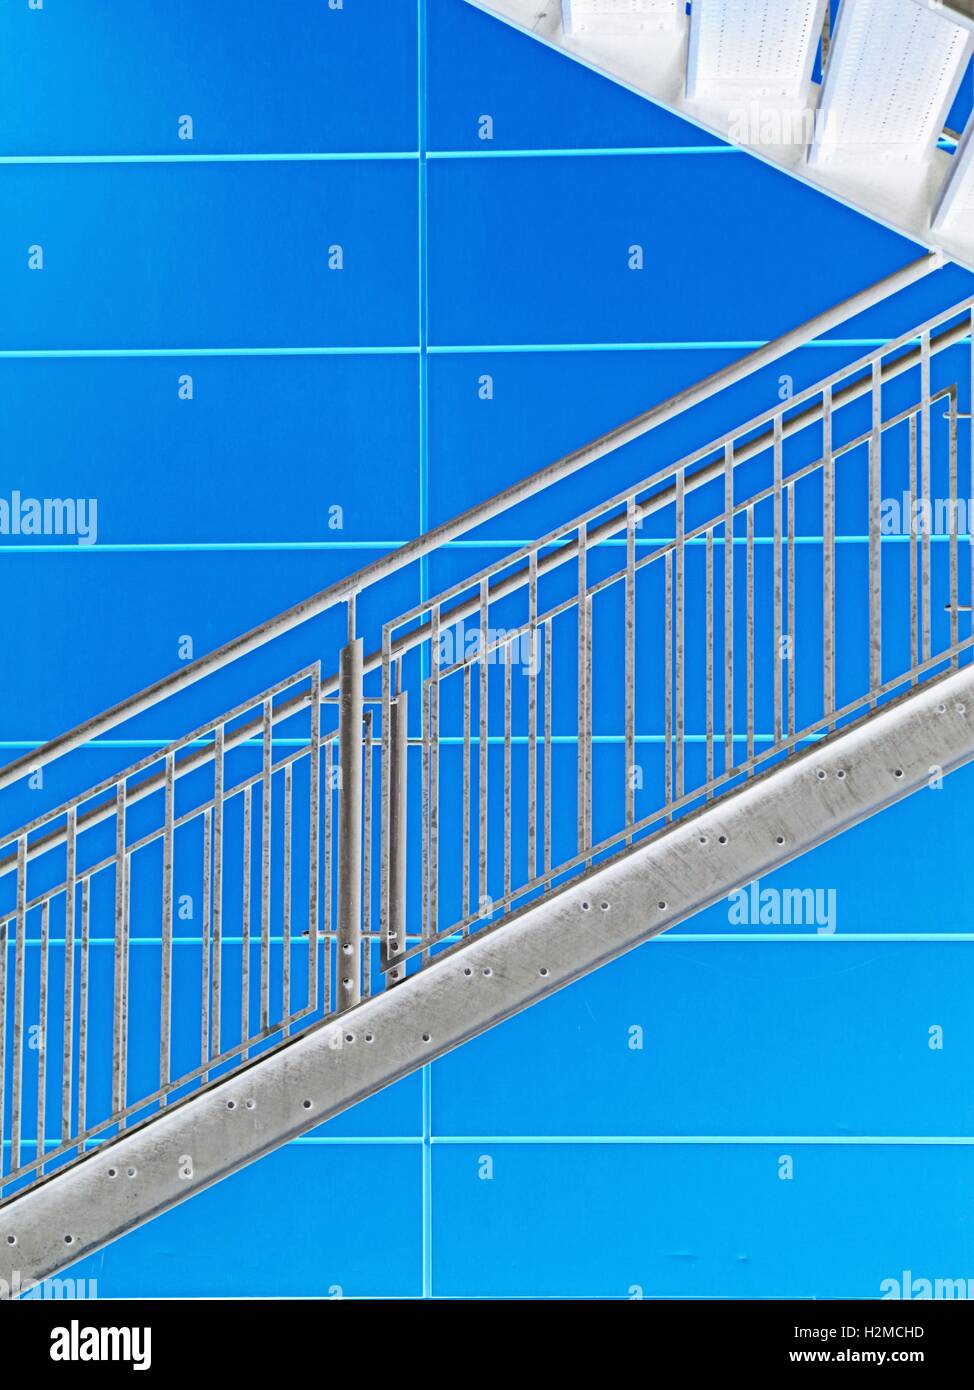 Industrial Staircase With Blue Panelled Wall Background.